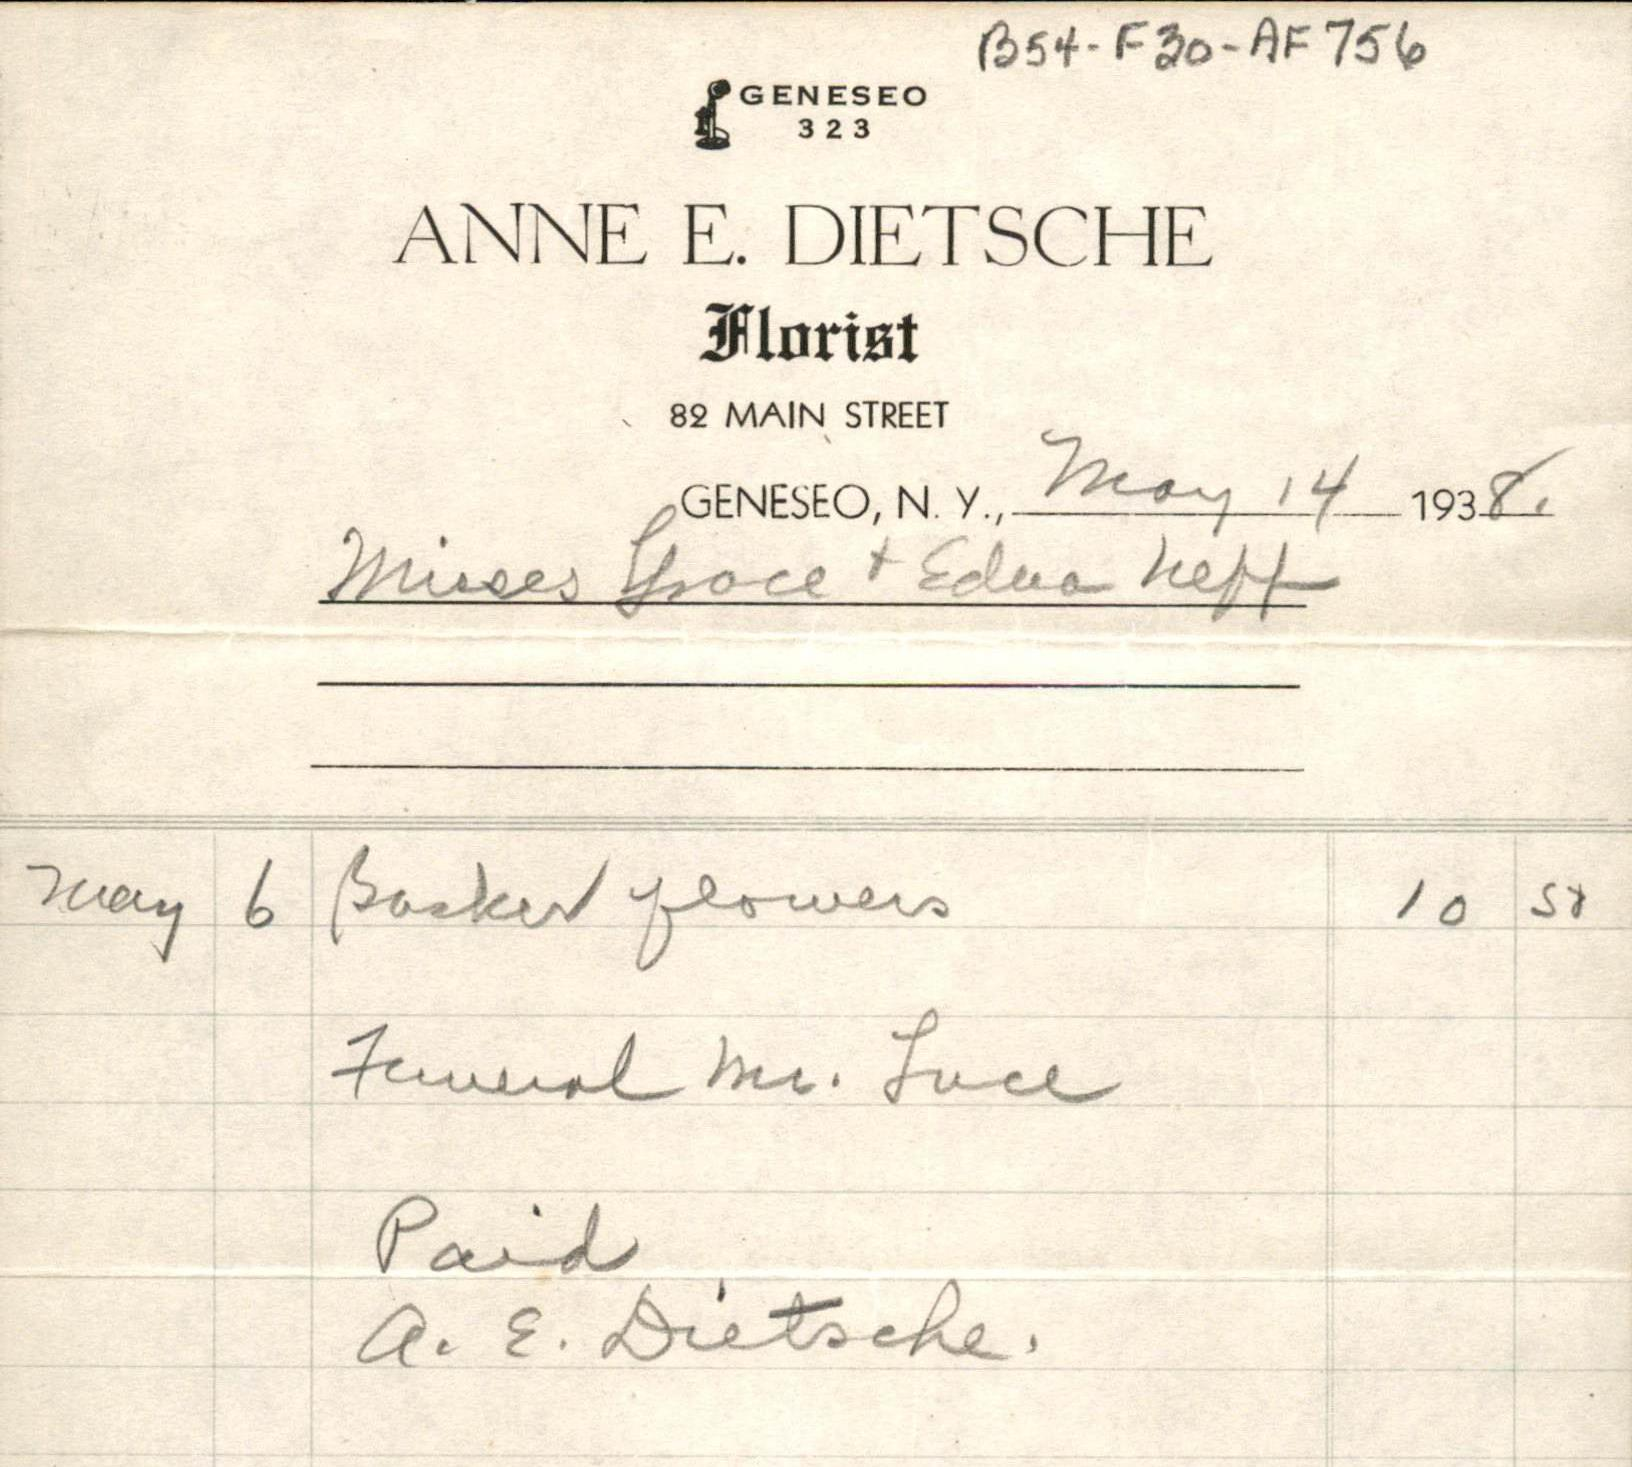 Receipt for Ann Dietsche, florist